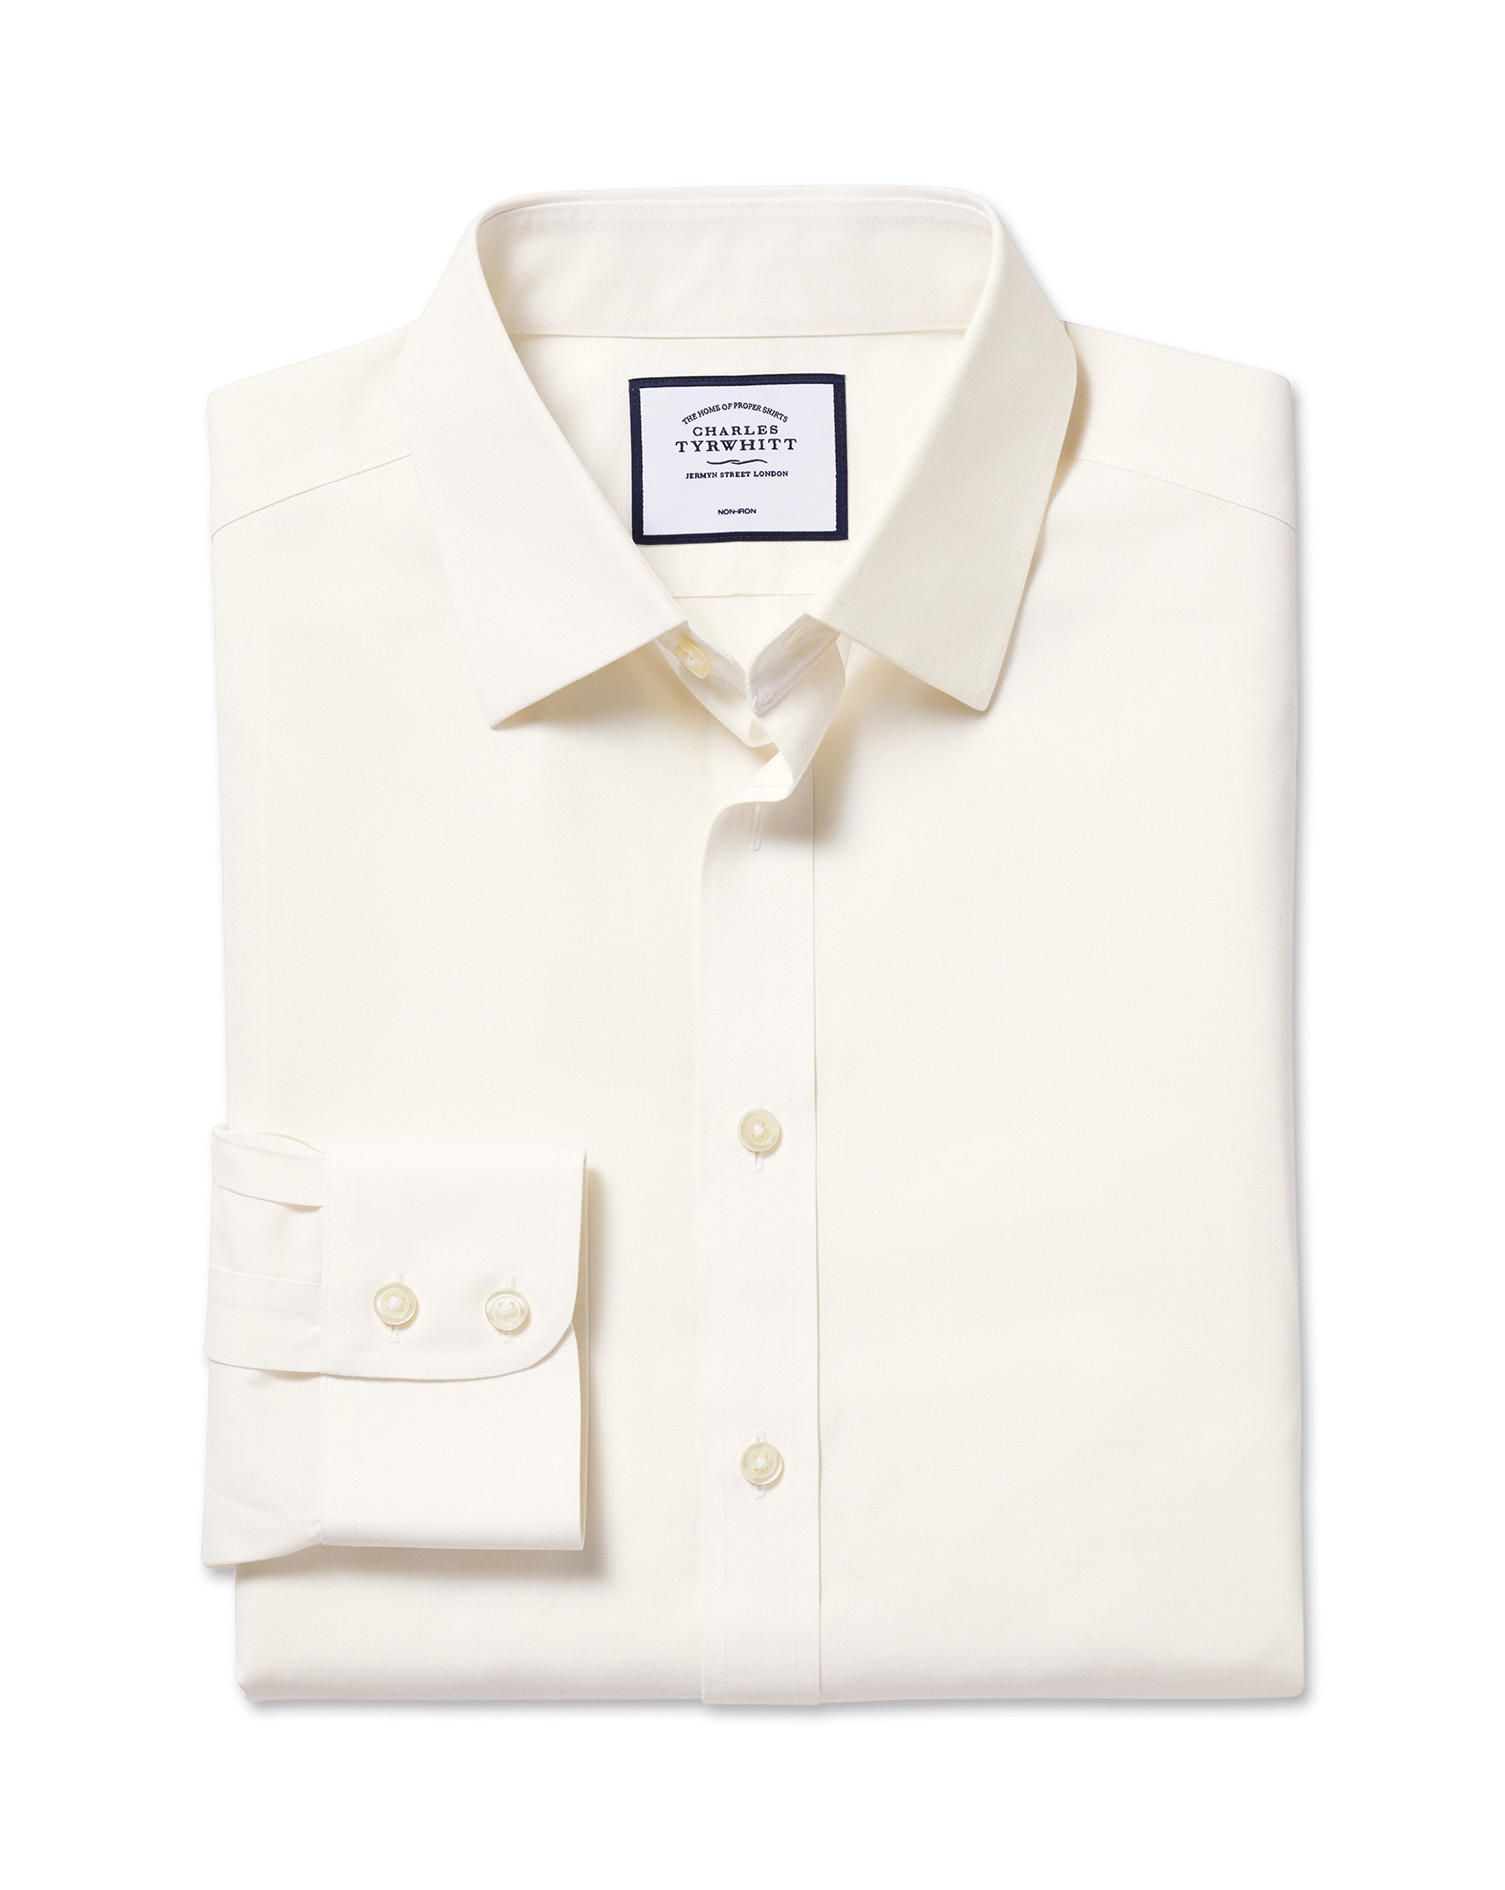 Slim Fit Non-Iron Poplin Cream Cotton Formal Shirt Single Cuff Size 17.5/34 by Charles Tyrwhitt